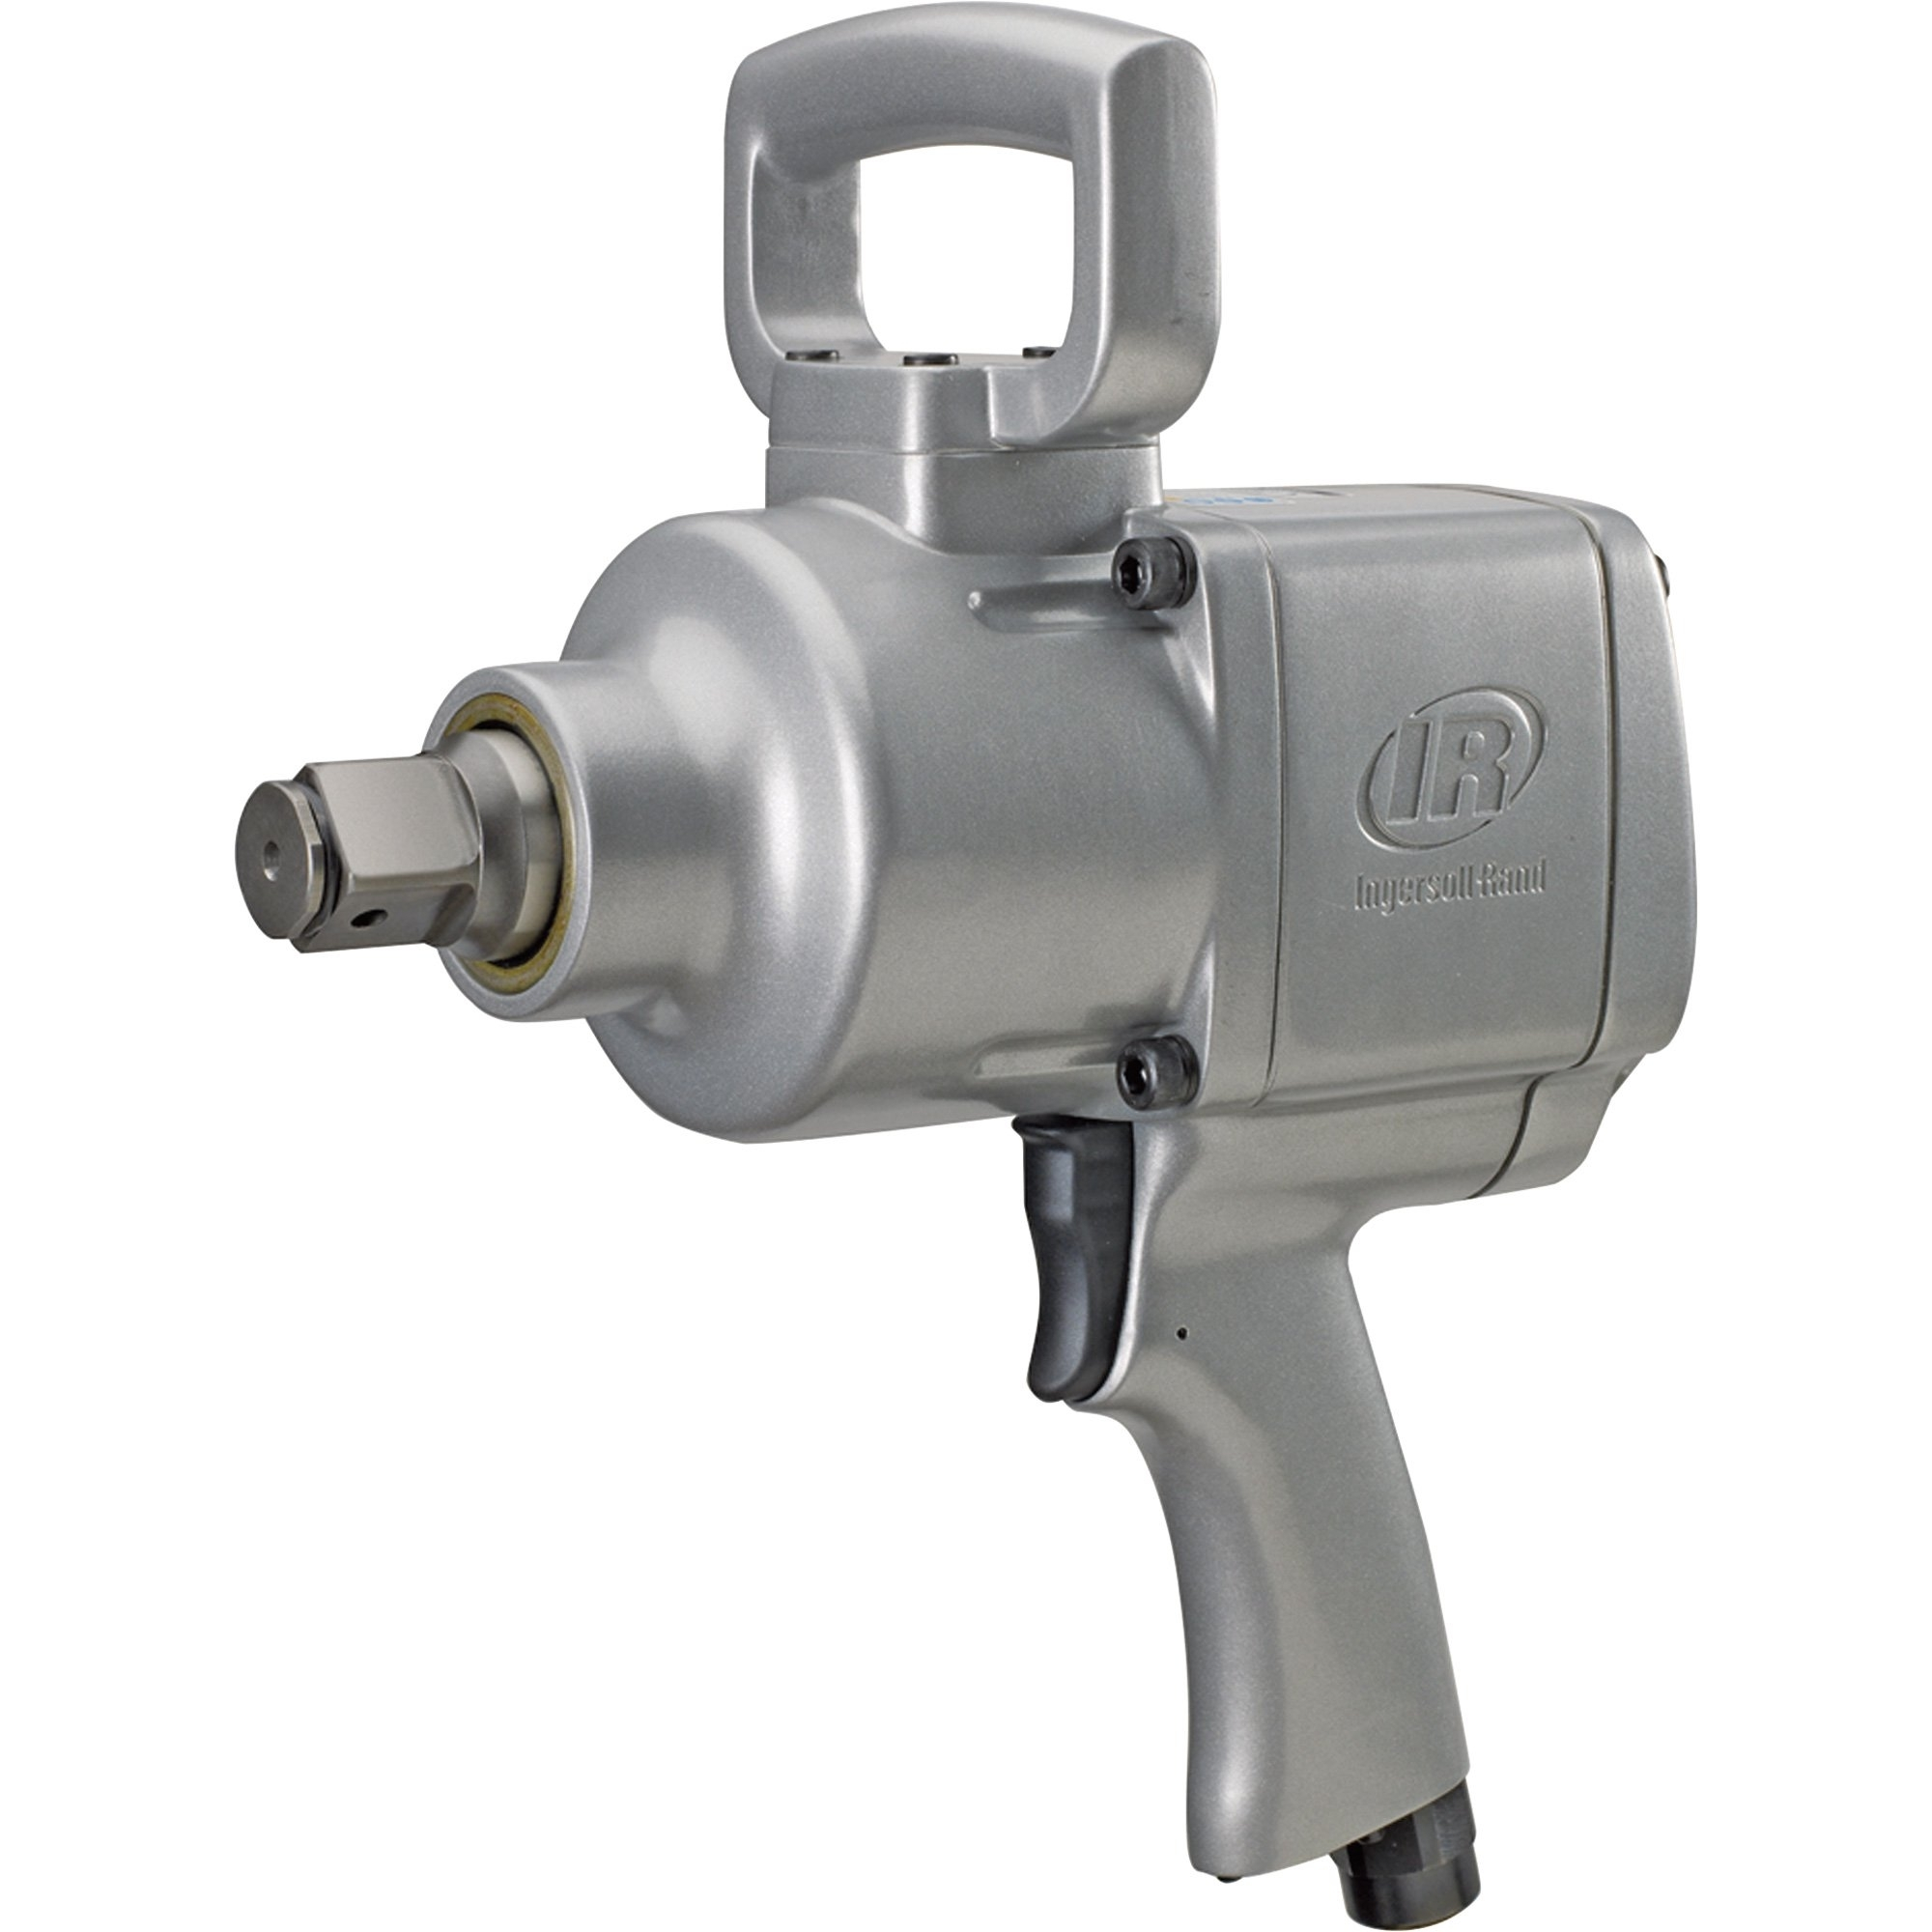 Ingersoll Rand Air Impact Wrench — 1In. Drive, 10 Cfm, 1,475 Ft pertaining to Ingersoll Rand Air Tool Parts Diagrams